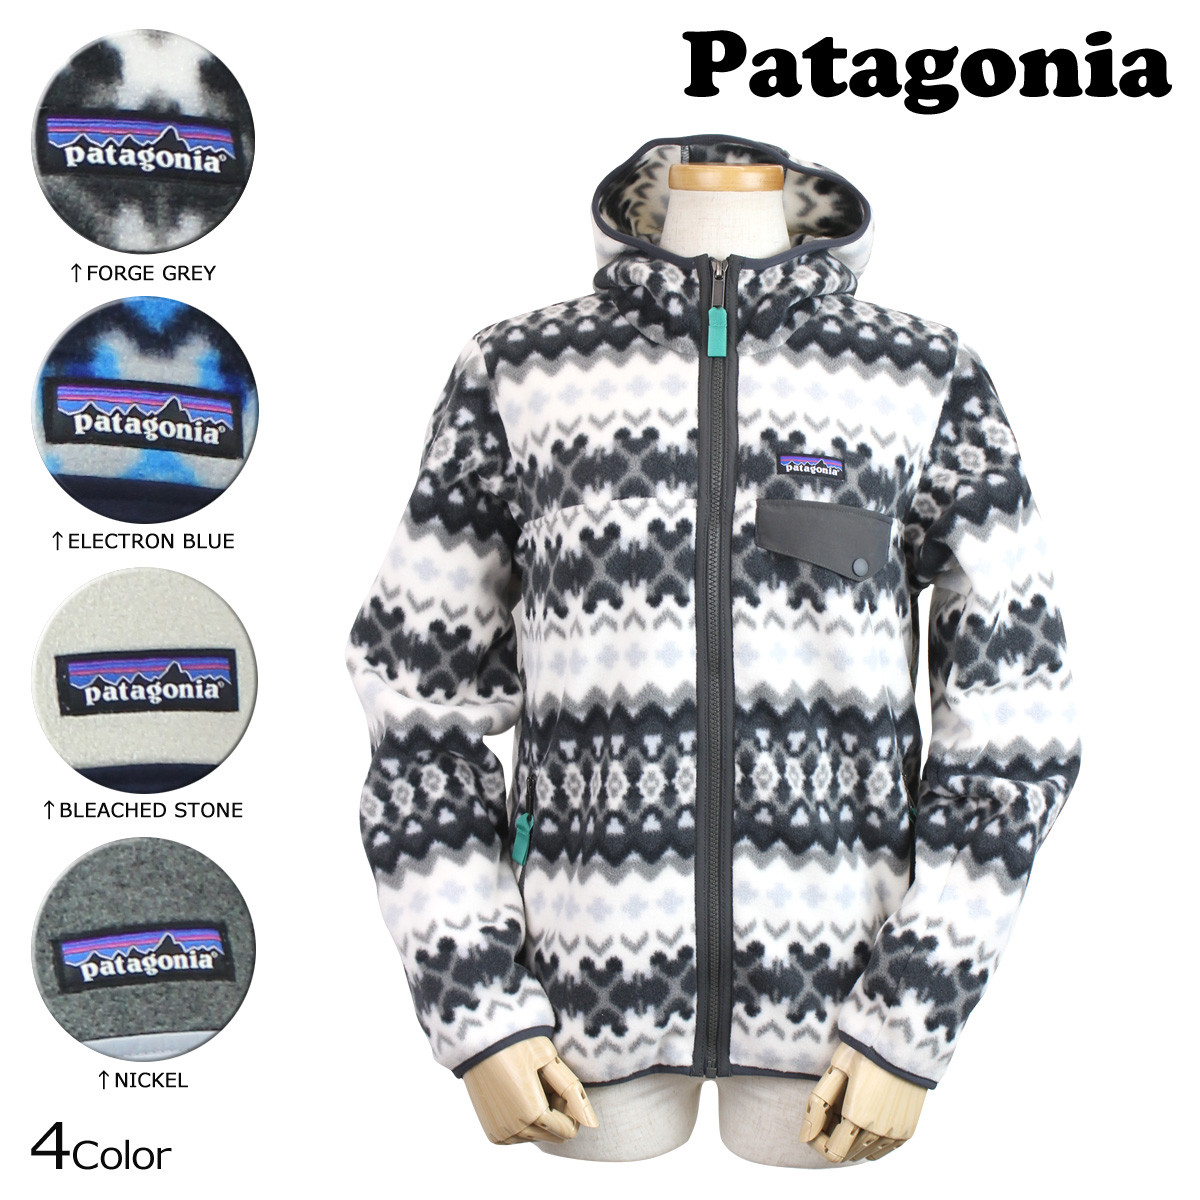 closer at best online more photos patagonia Patagonia Lady's fleece jacket WOMEN'S LIGHTWEIGHT SNAP-T HOODED  JACKET 25270